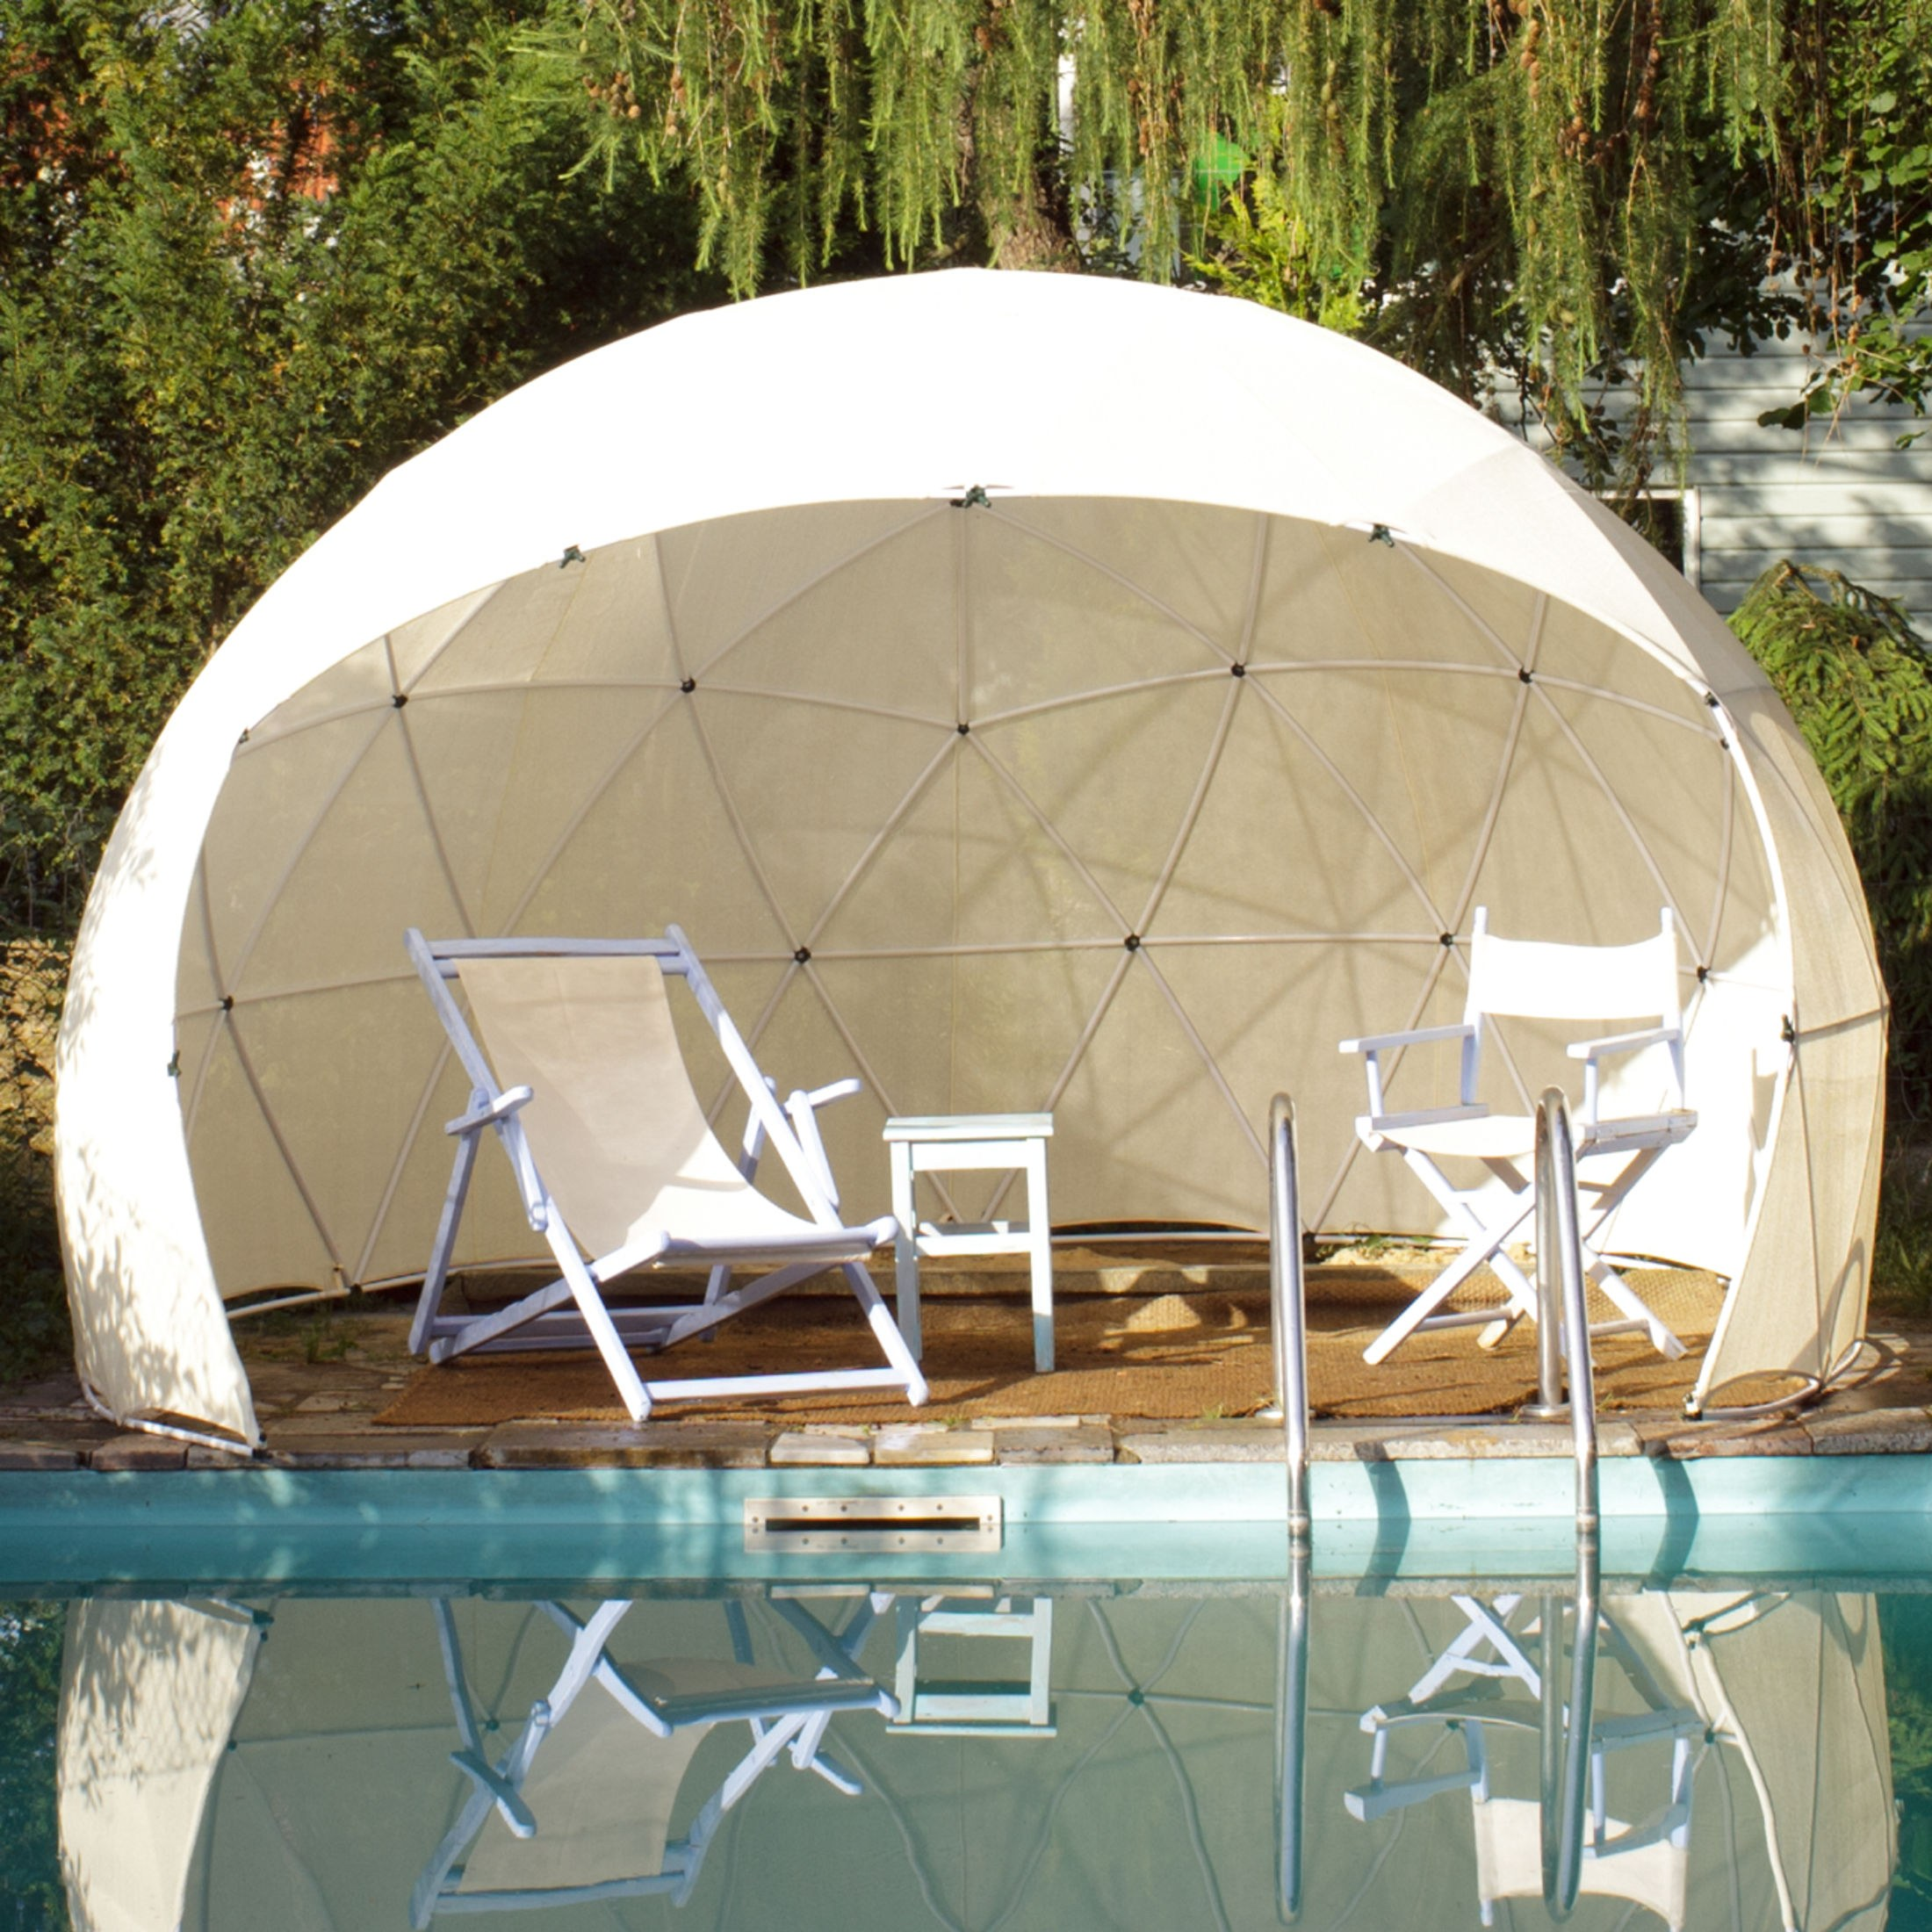 Garden igloo pavillon serre jardin igloo four seasons et appropri de son ebay - Igloo de jardin ...